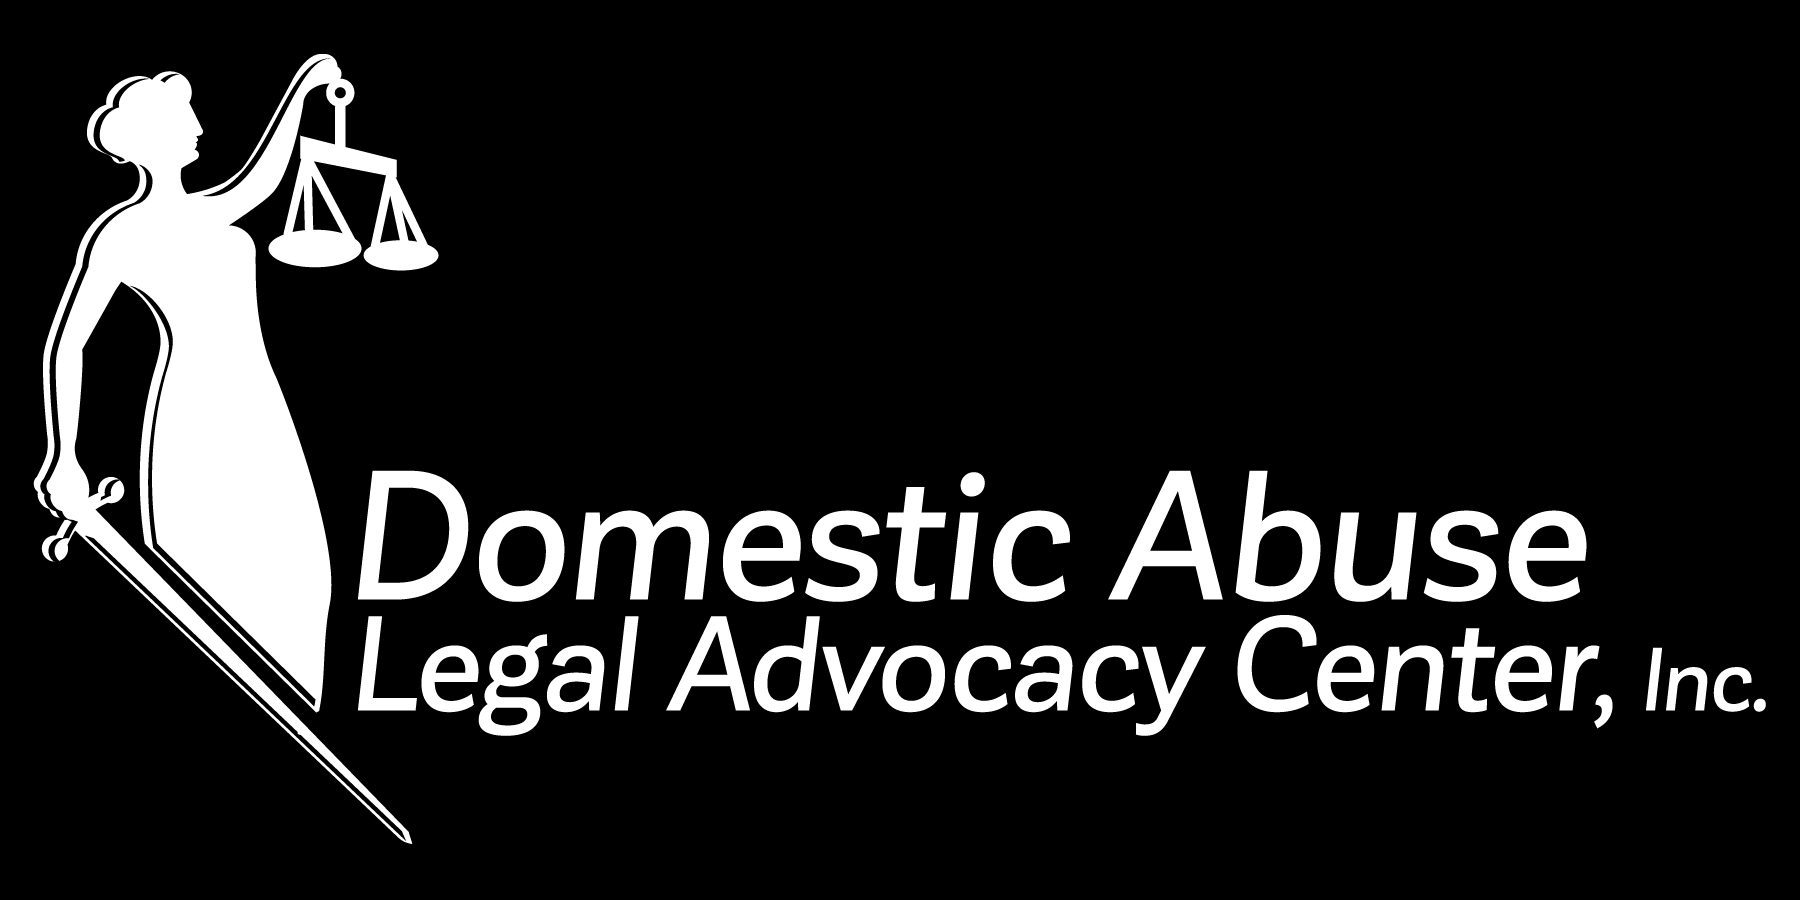 Domestic Abuse Legal Advocacy Center